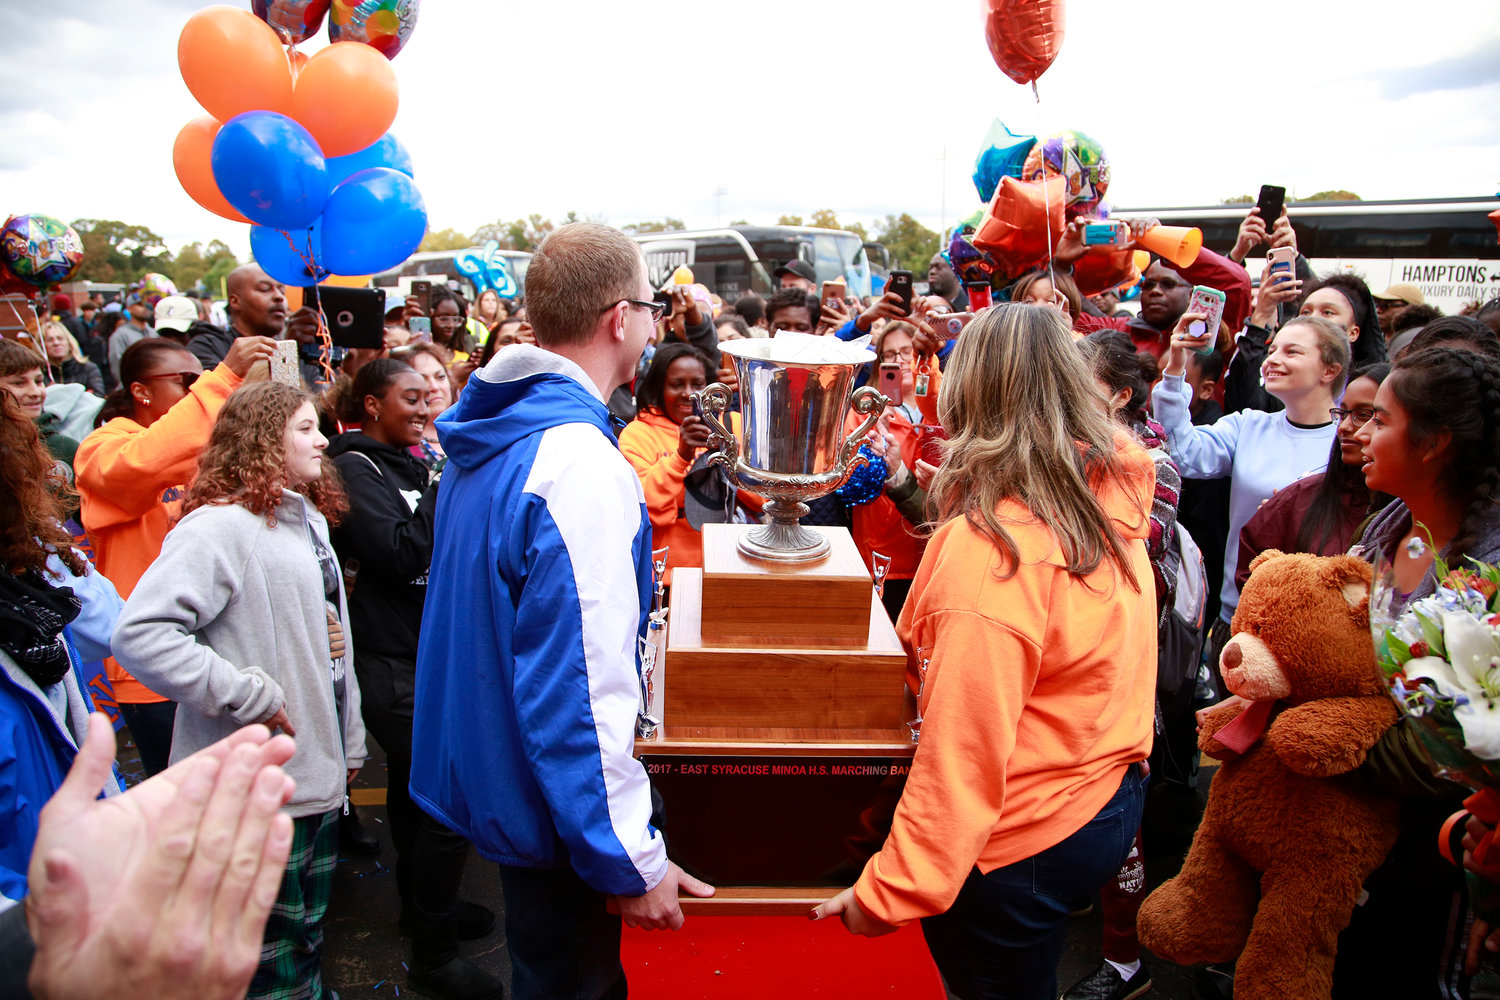 Band directors Glen Johnson and Alyssa Rizzuto carried the trophy through the crowd at Malverne High School.